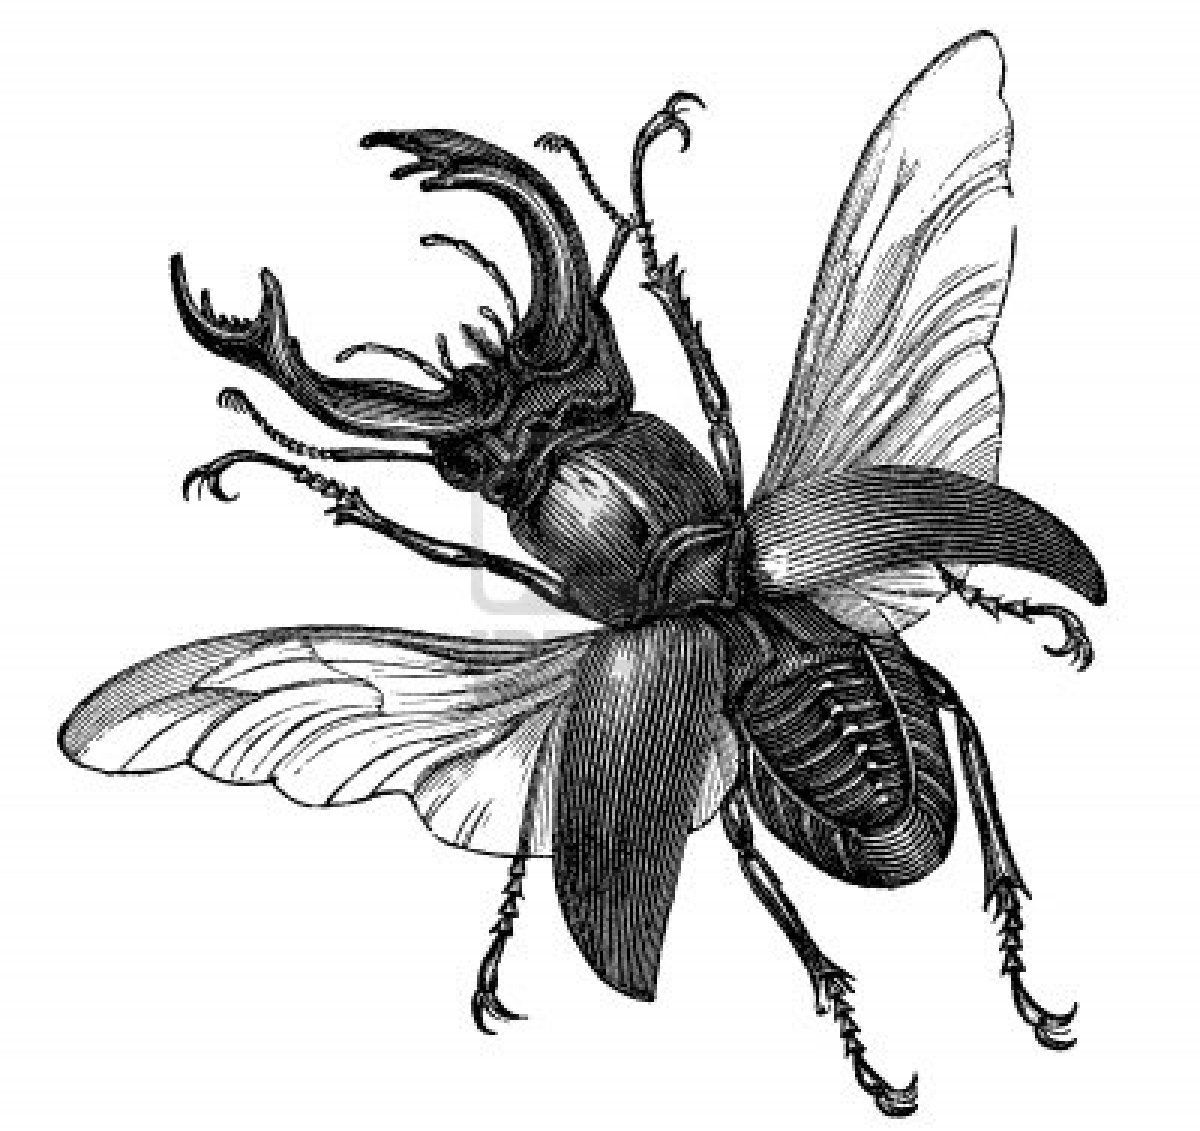 A Vintage Engraved Illustration Of A Stag Beetle In